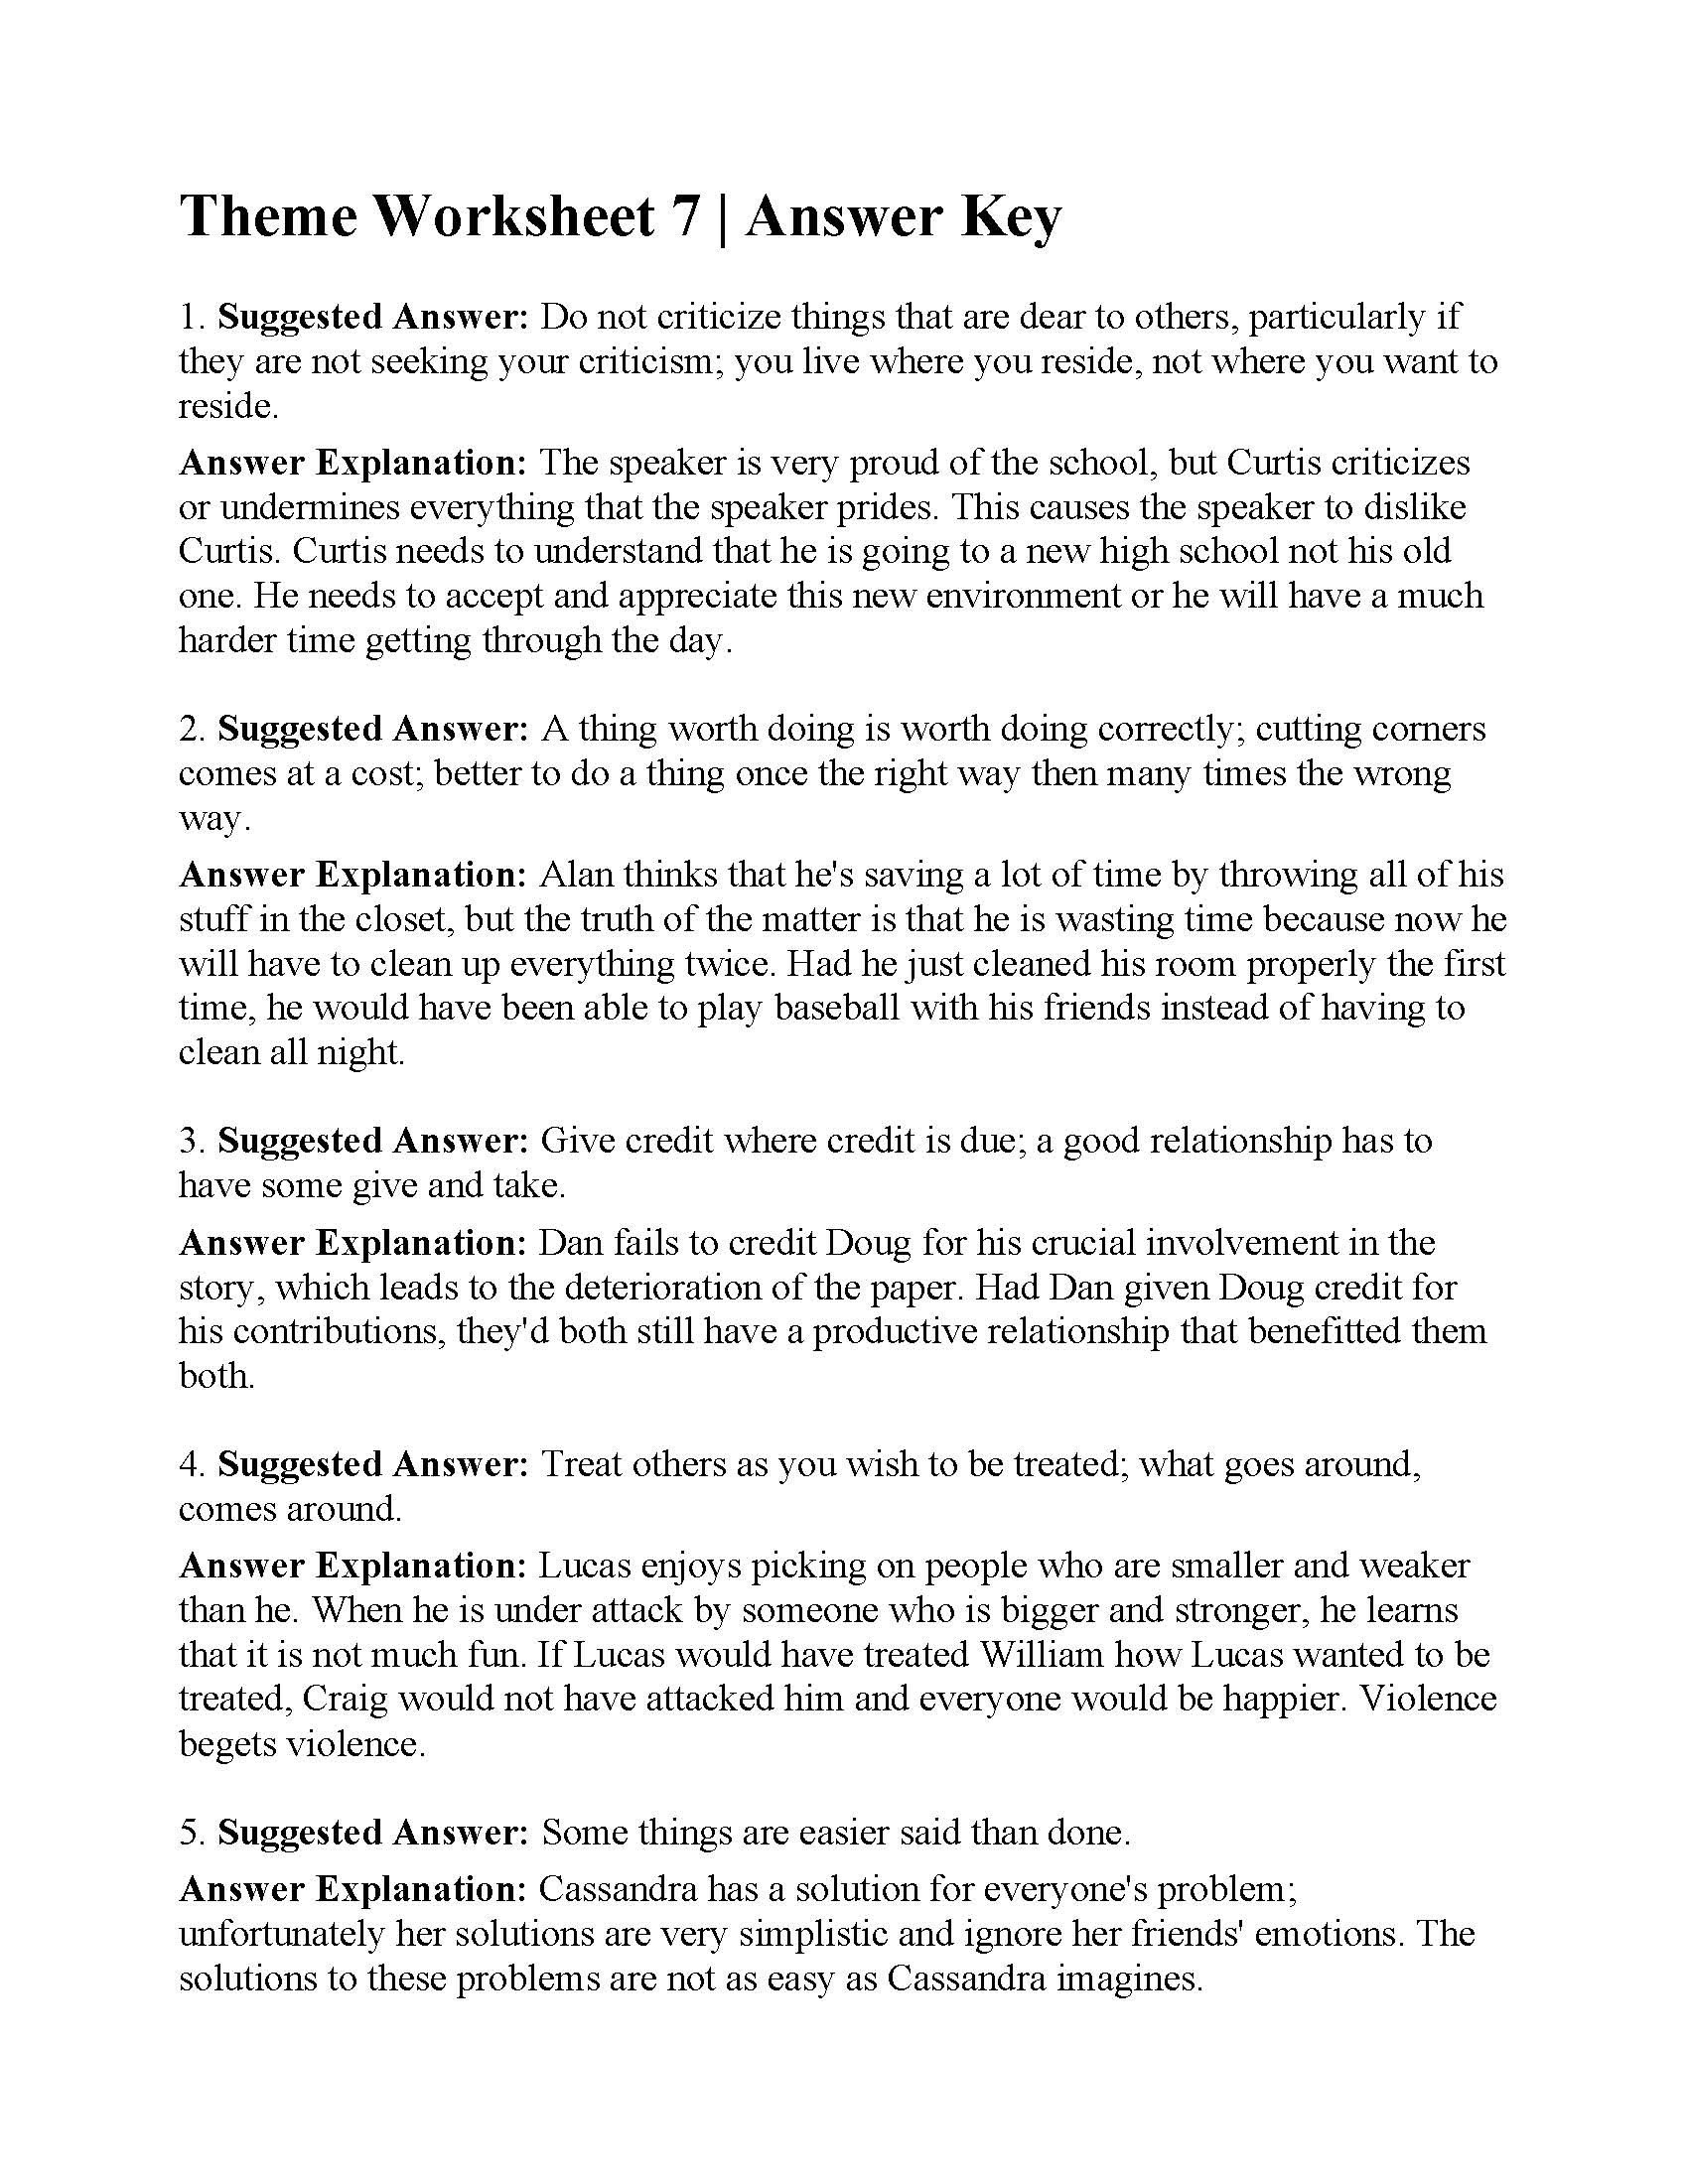 Identifying theme Worksheets Answers theme Worksheet 7